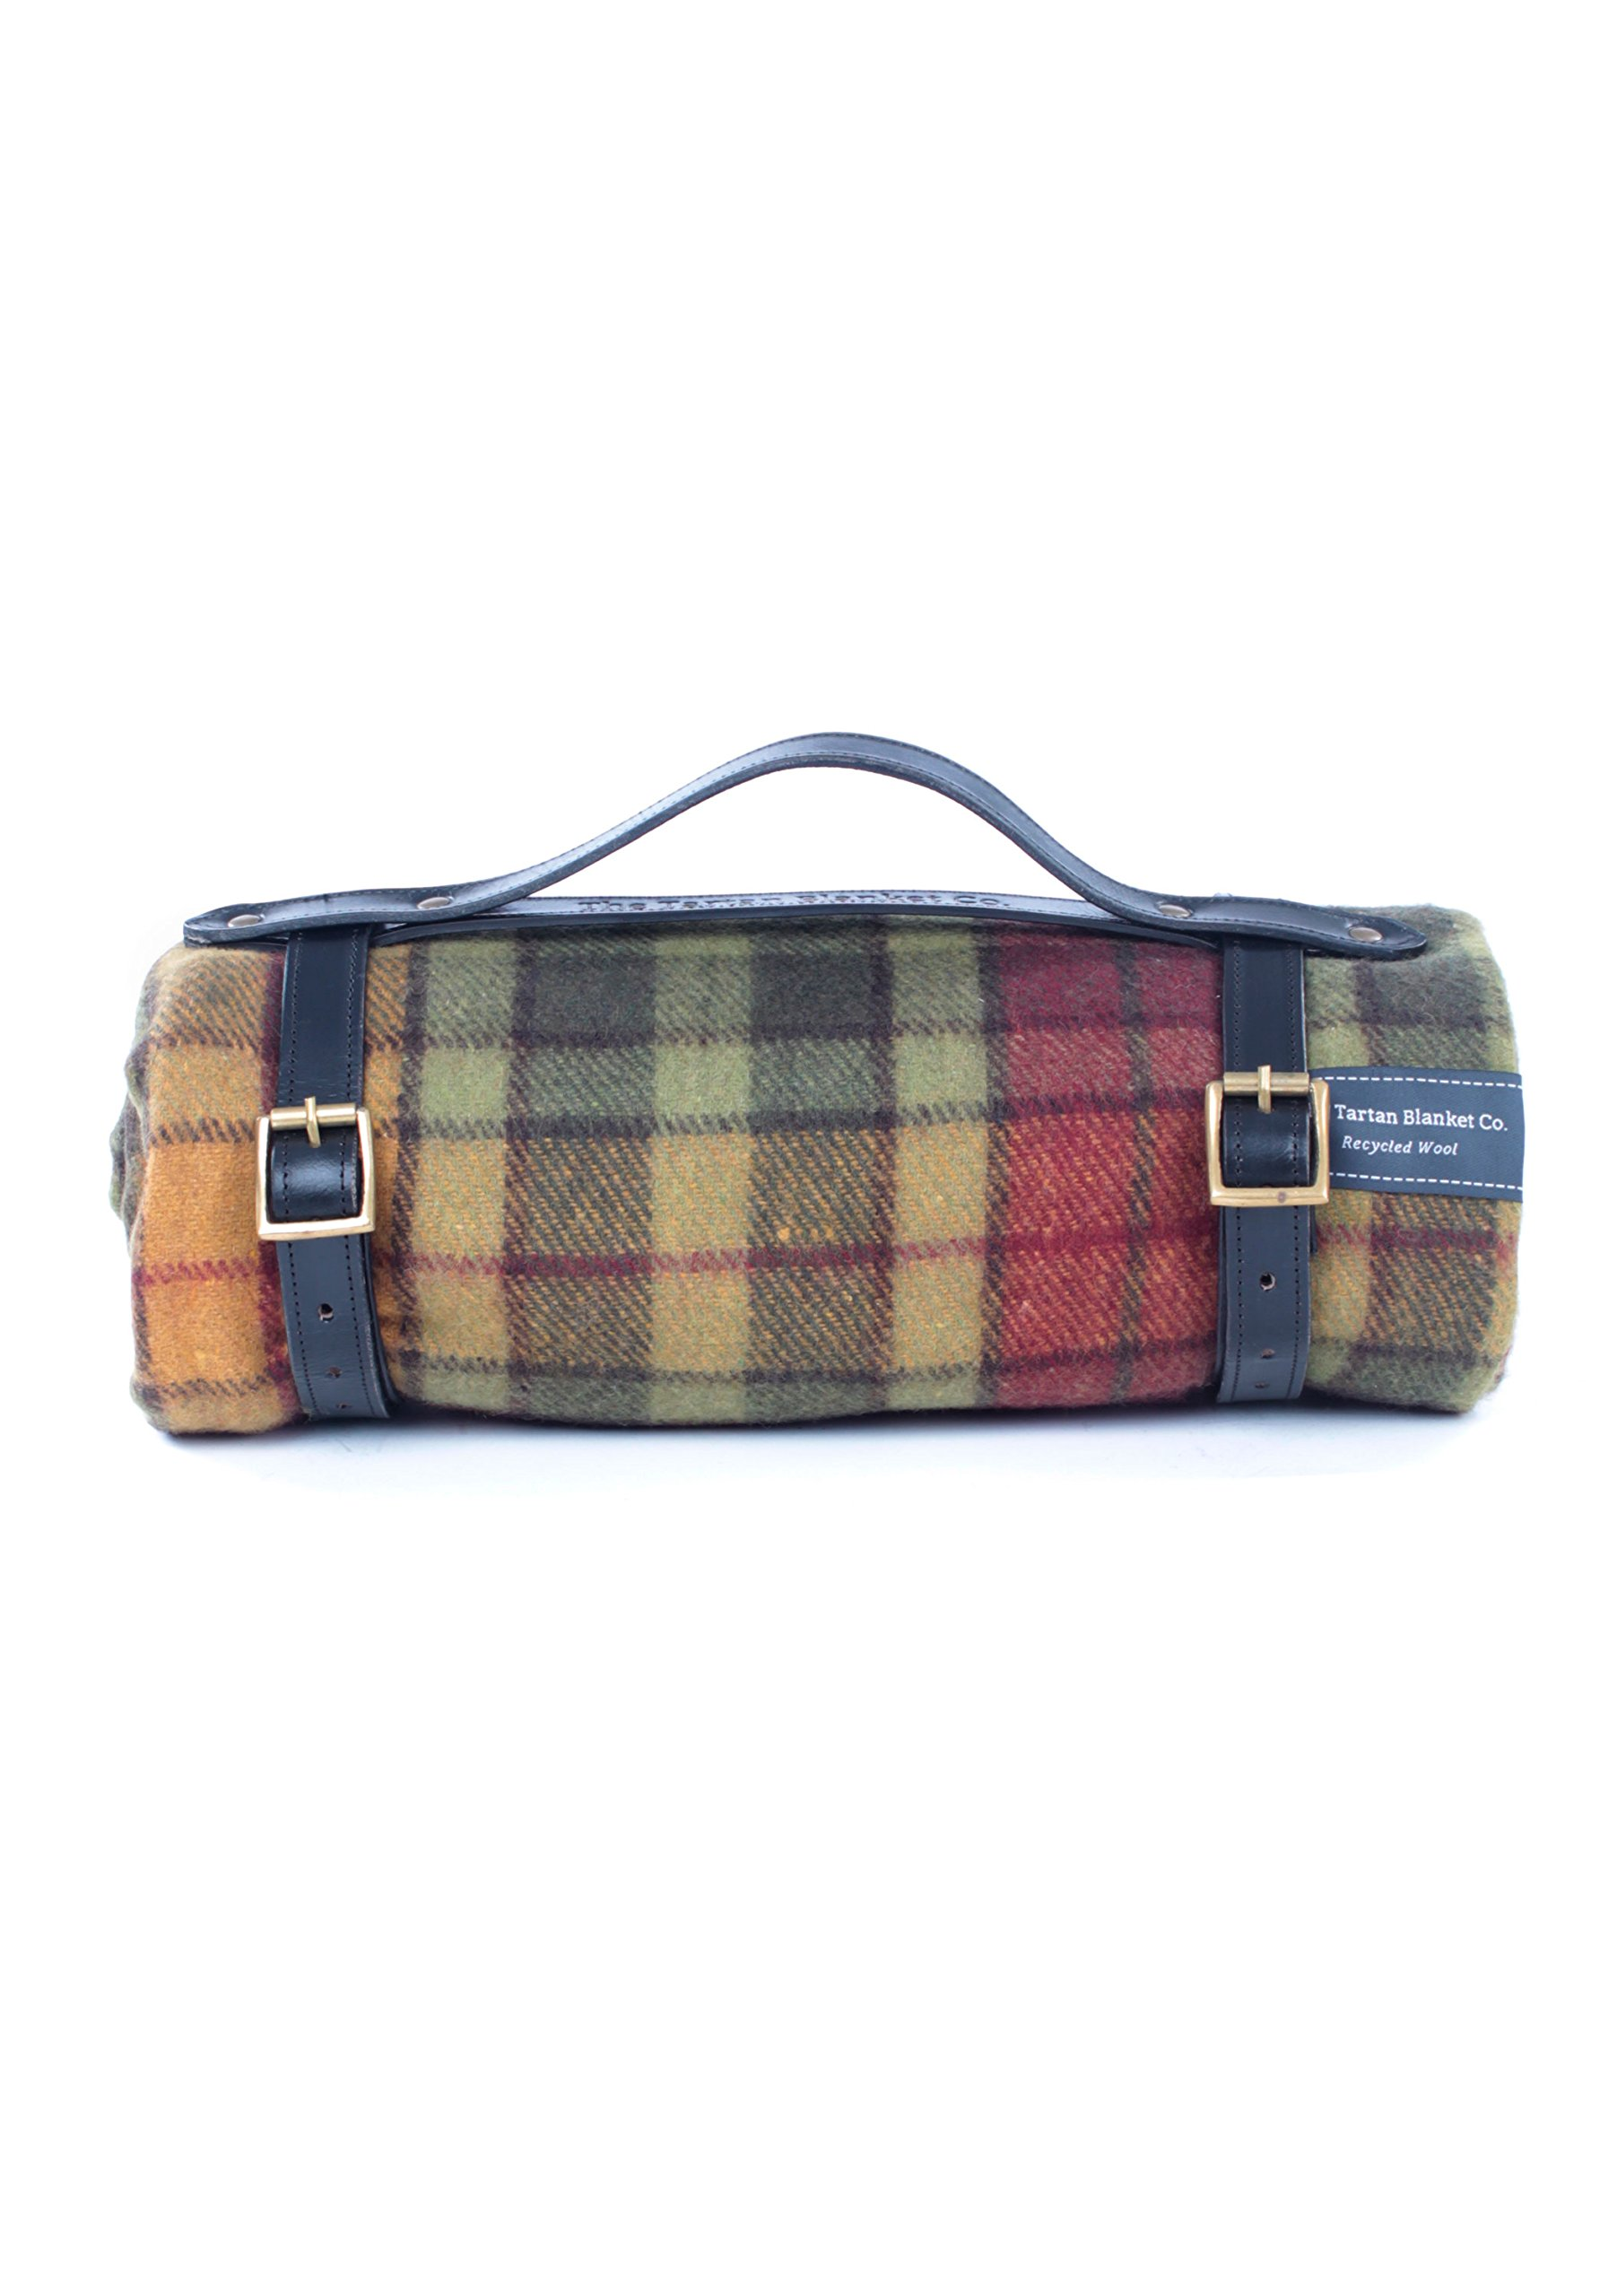 The Tartan Blanket Co. Recycled Wool Picnic Blanket with Black Leather Strap (Buchanan Autumn) by The Tartan Blanket Co.